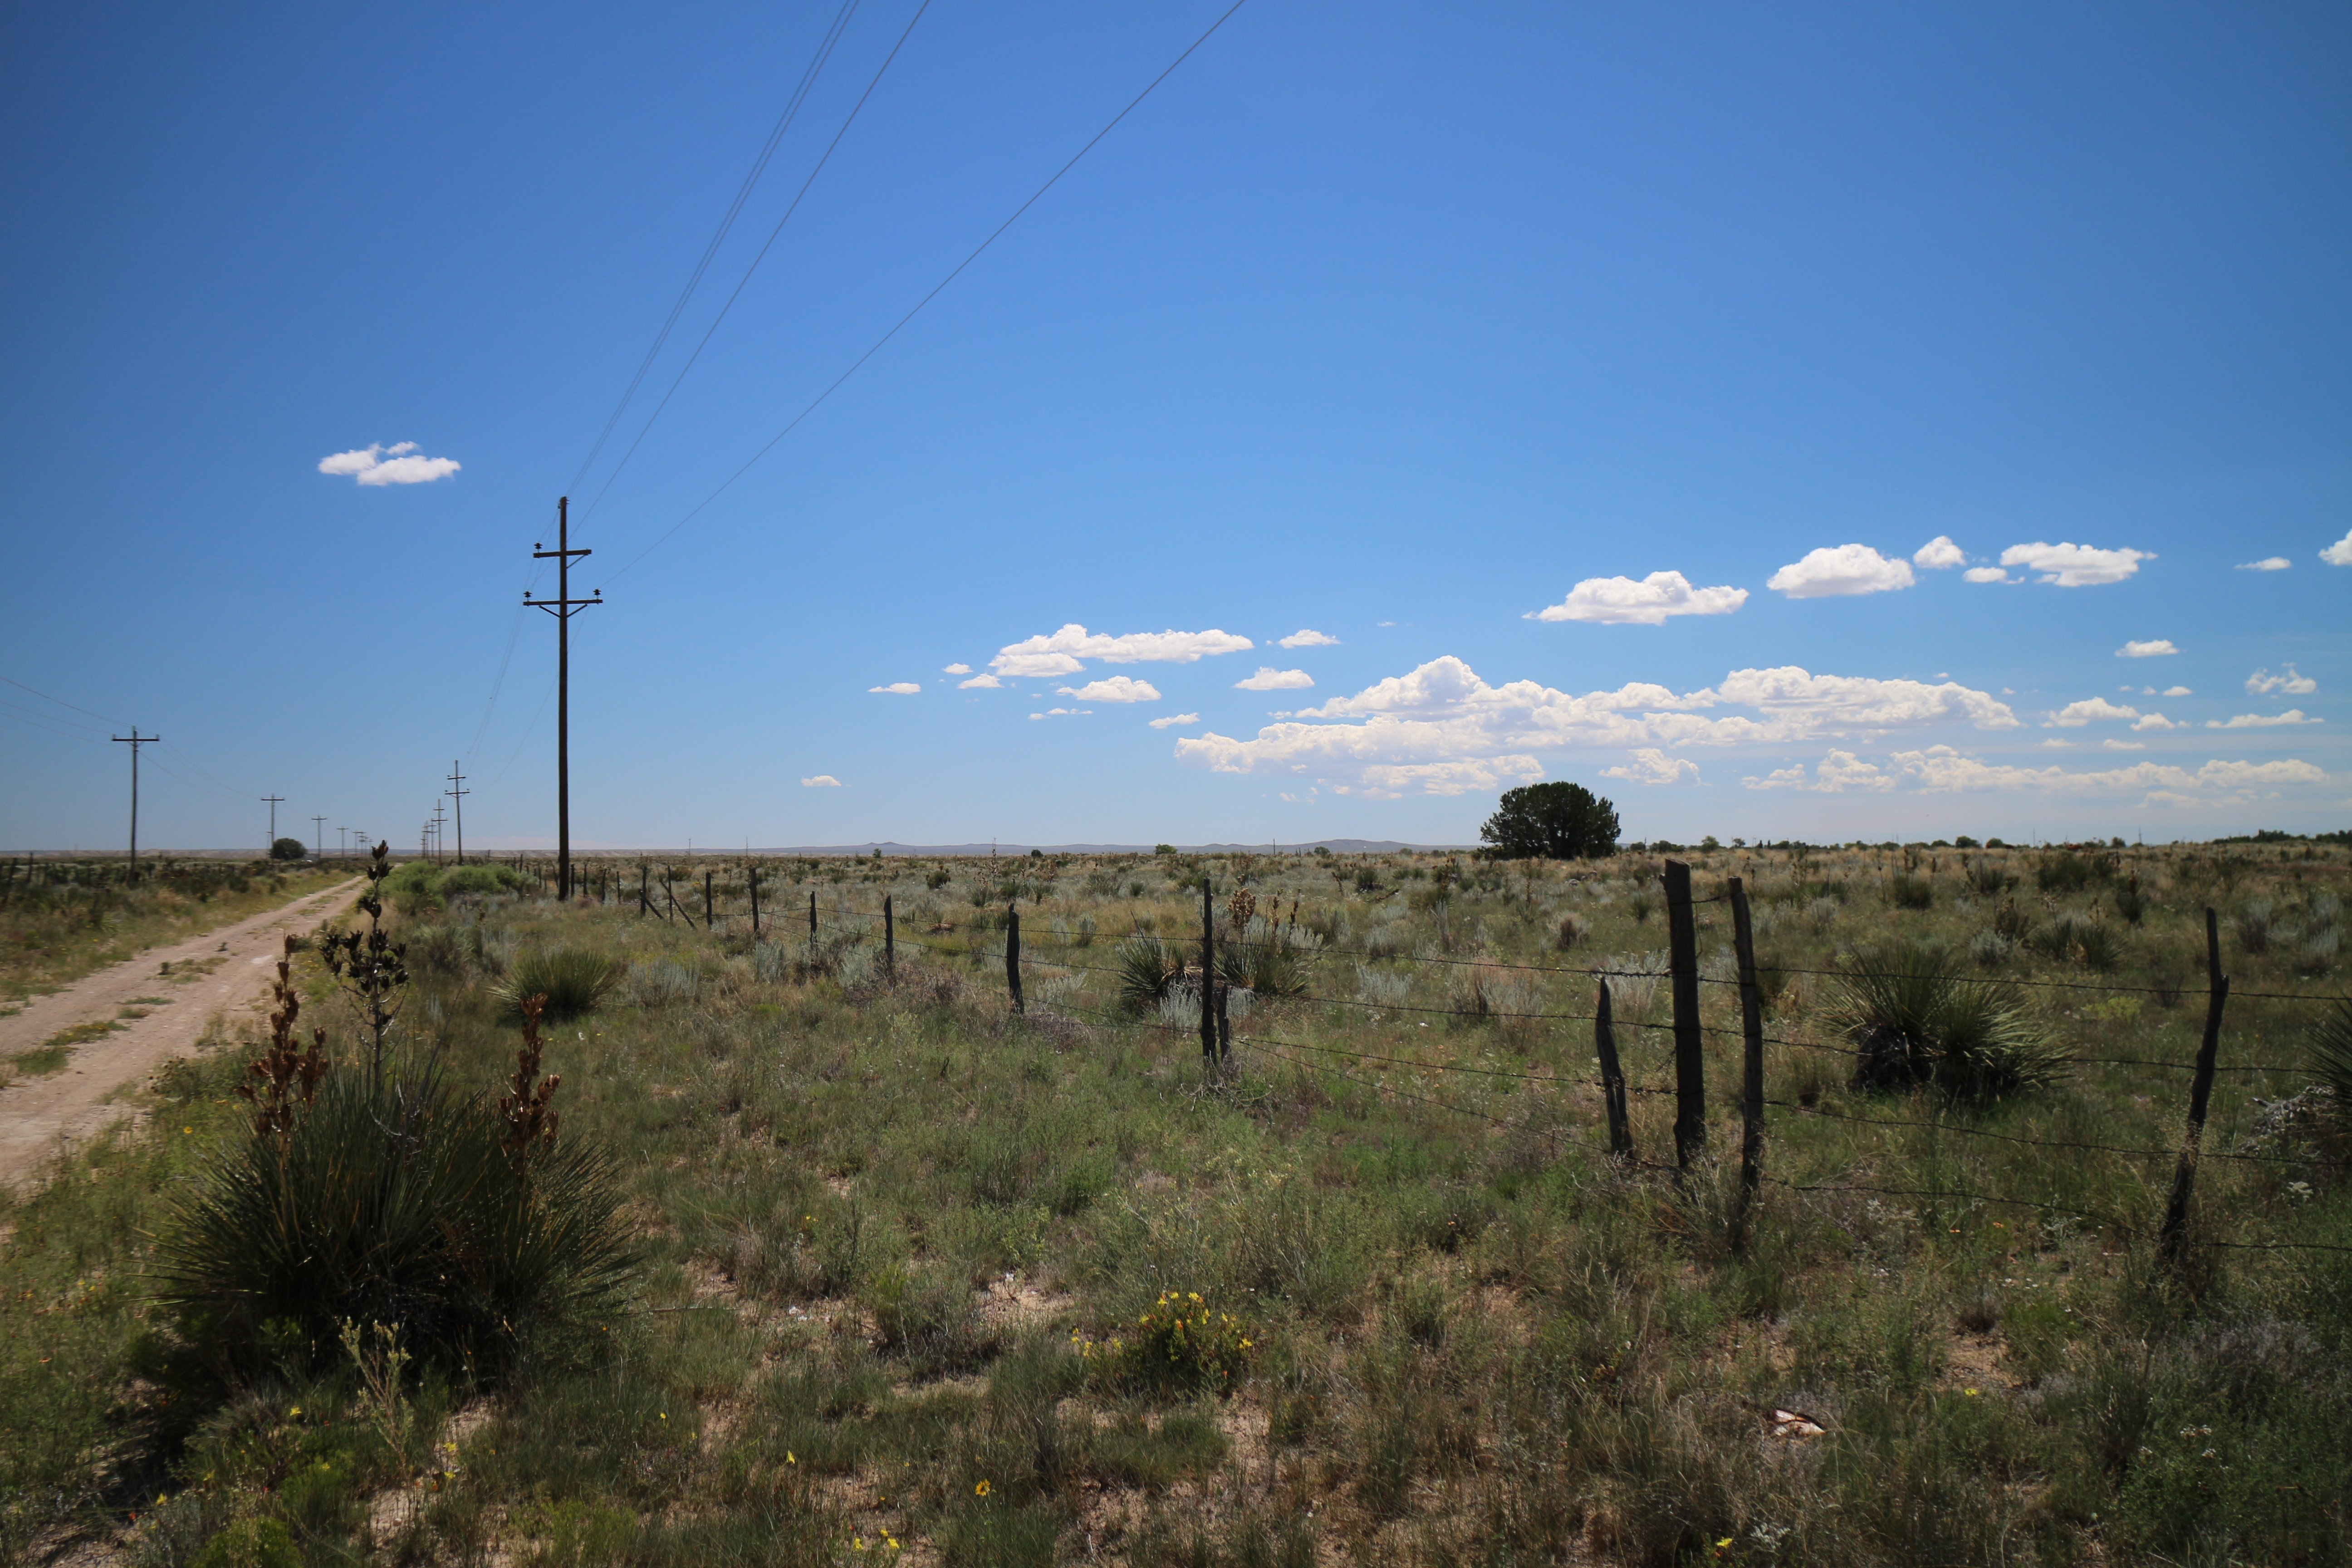 21335CAN Torrance Co, NM